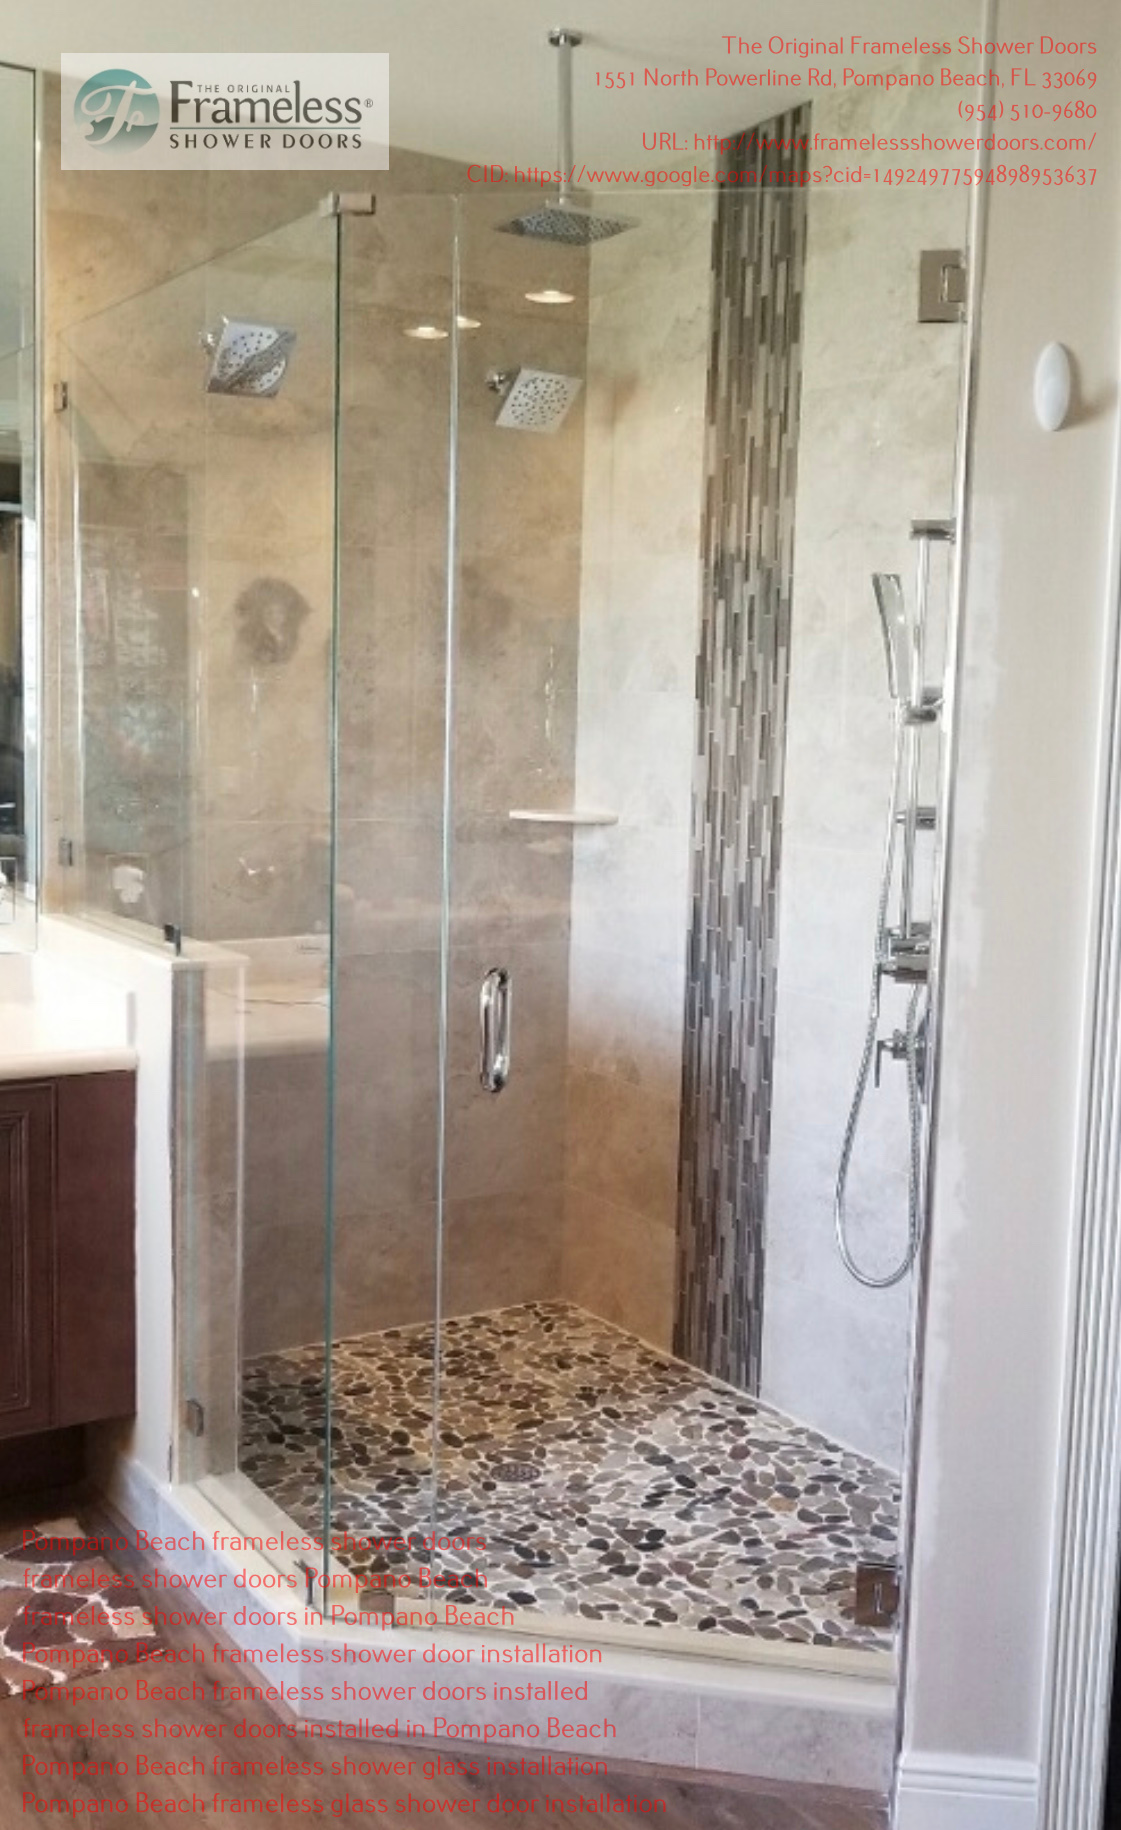 The Original Frameless Shower Doors Affirms the Introduction of Their Swinging Shower Doors